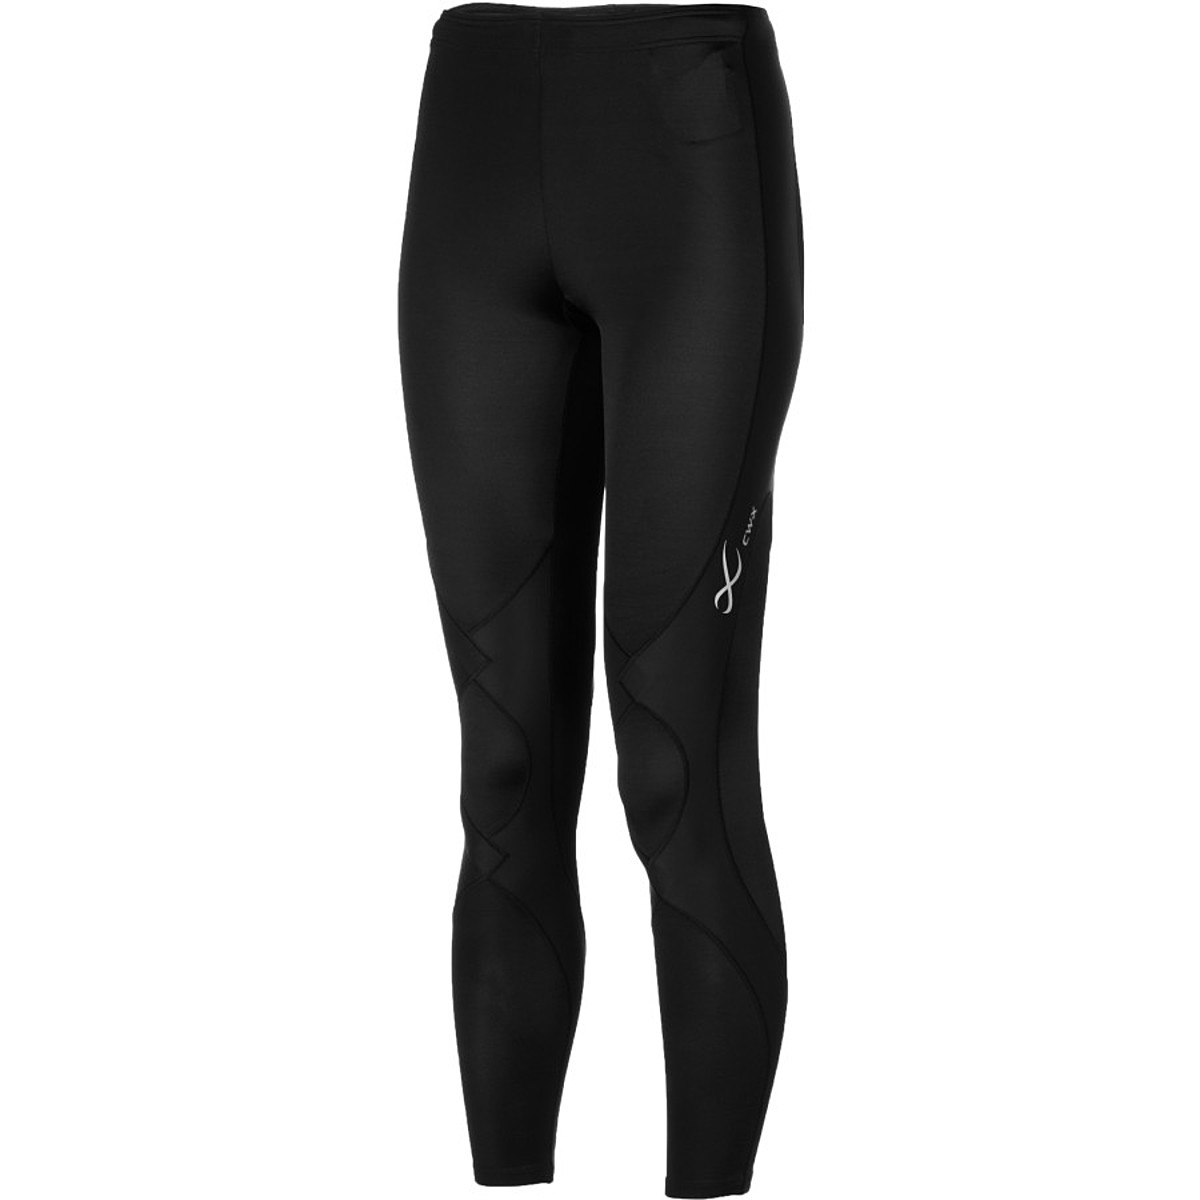 CW-X Expert Tights